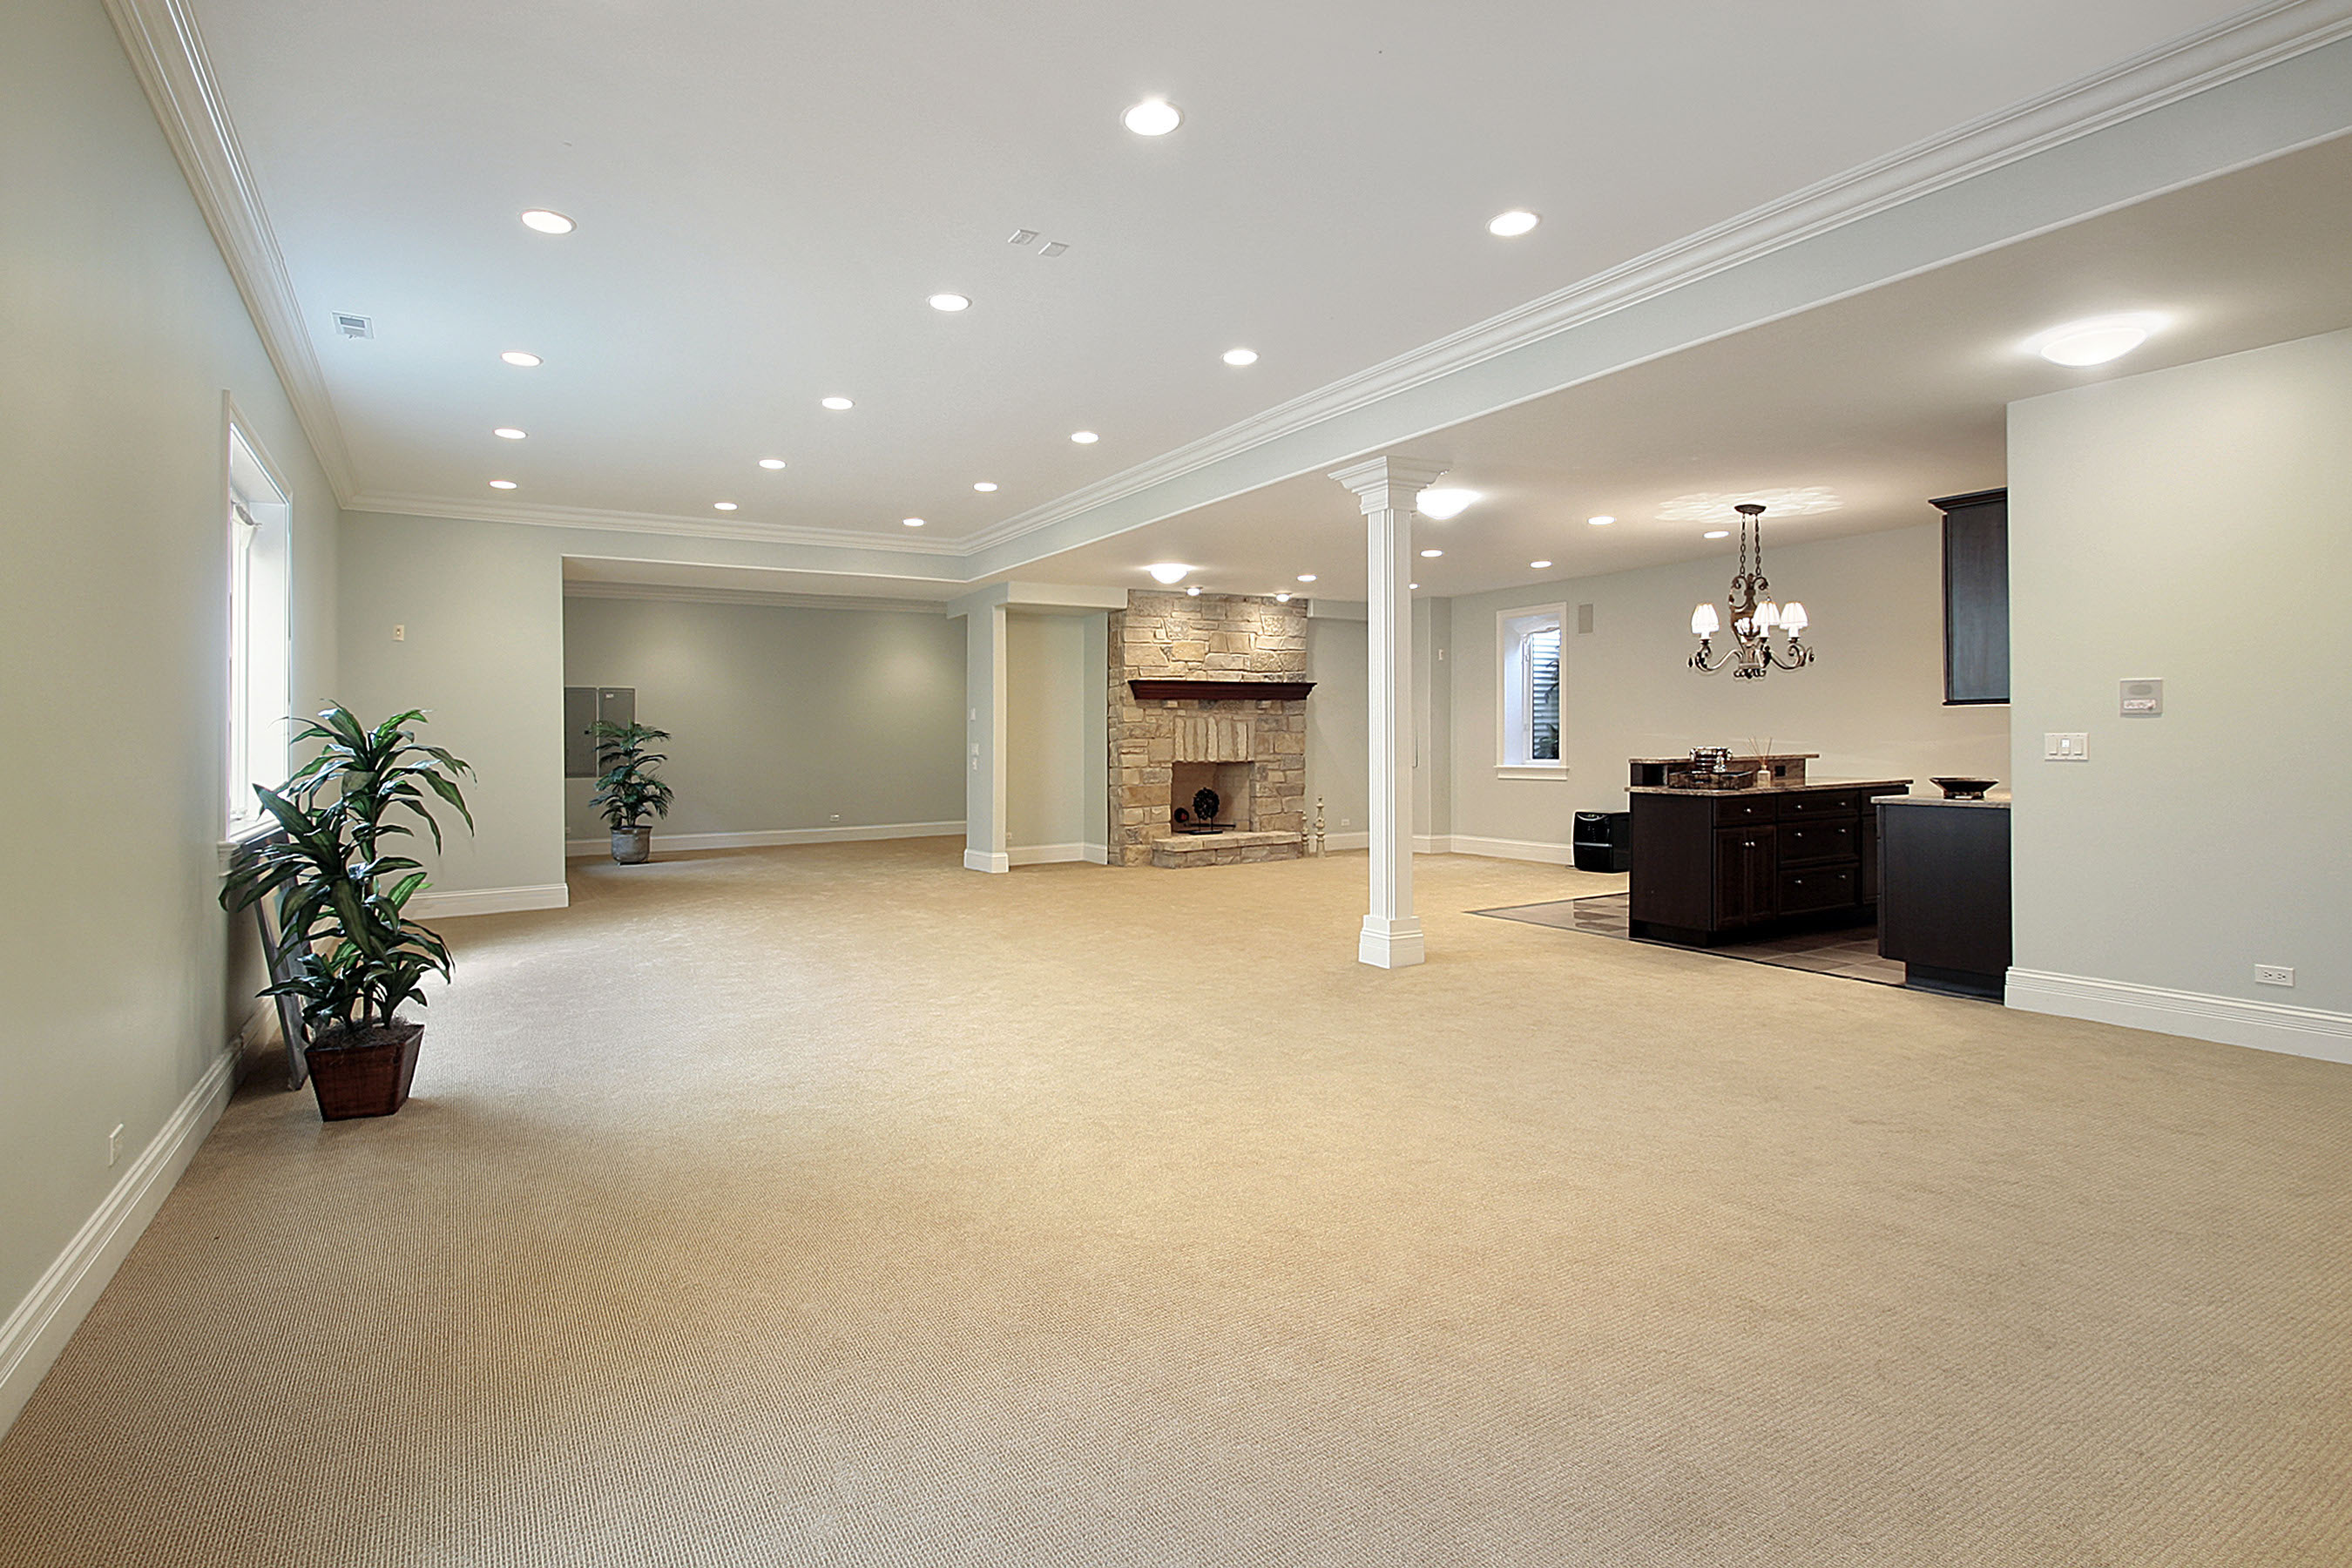 Ottawa's Best Carpet and Flooring - Carpet Sense and ...